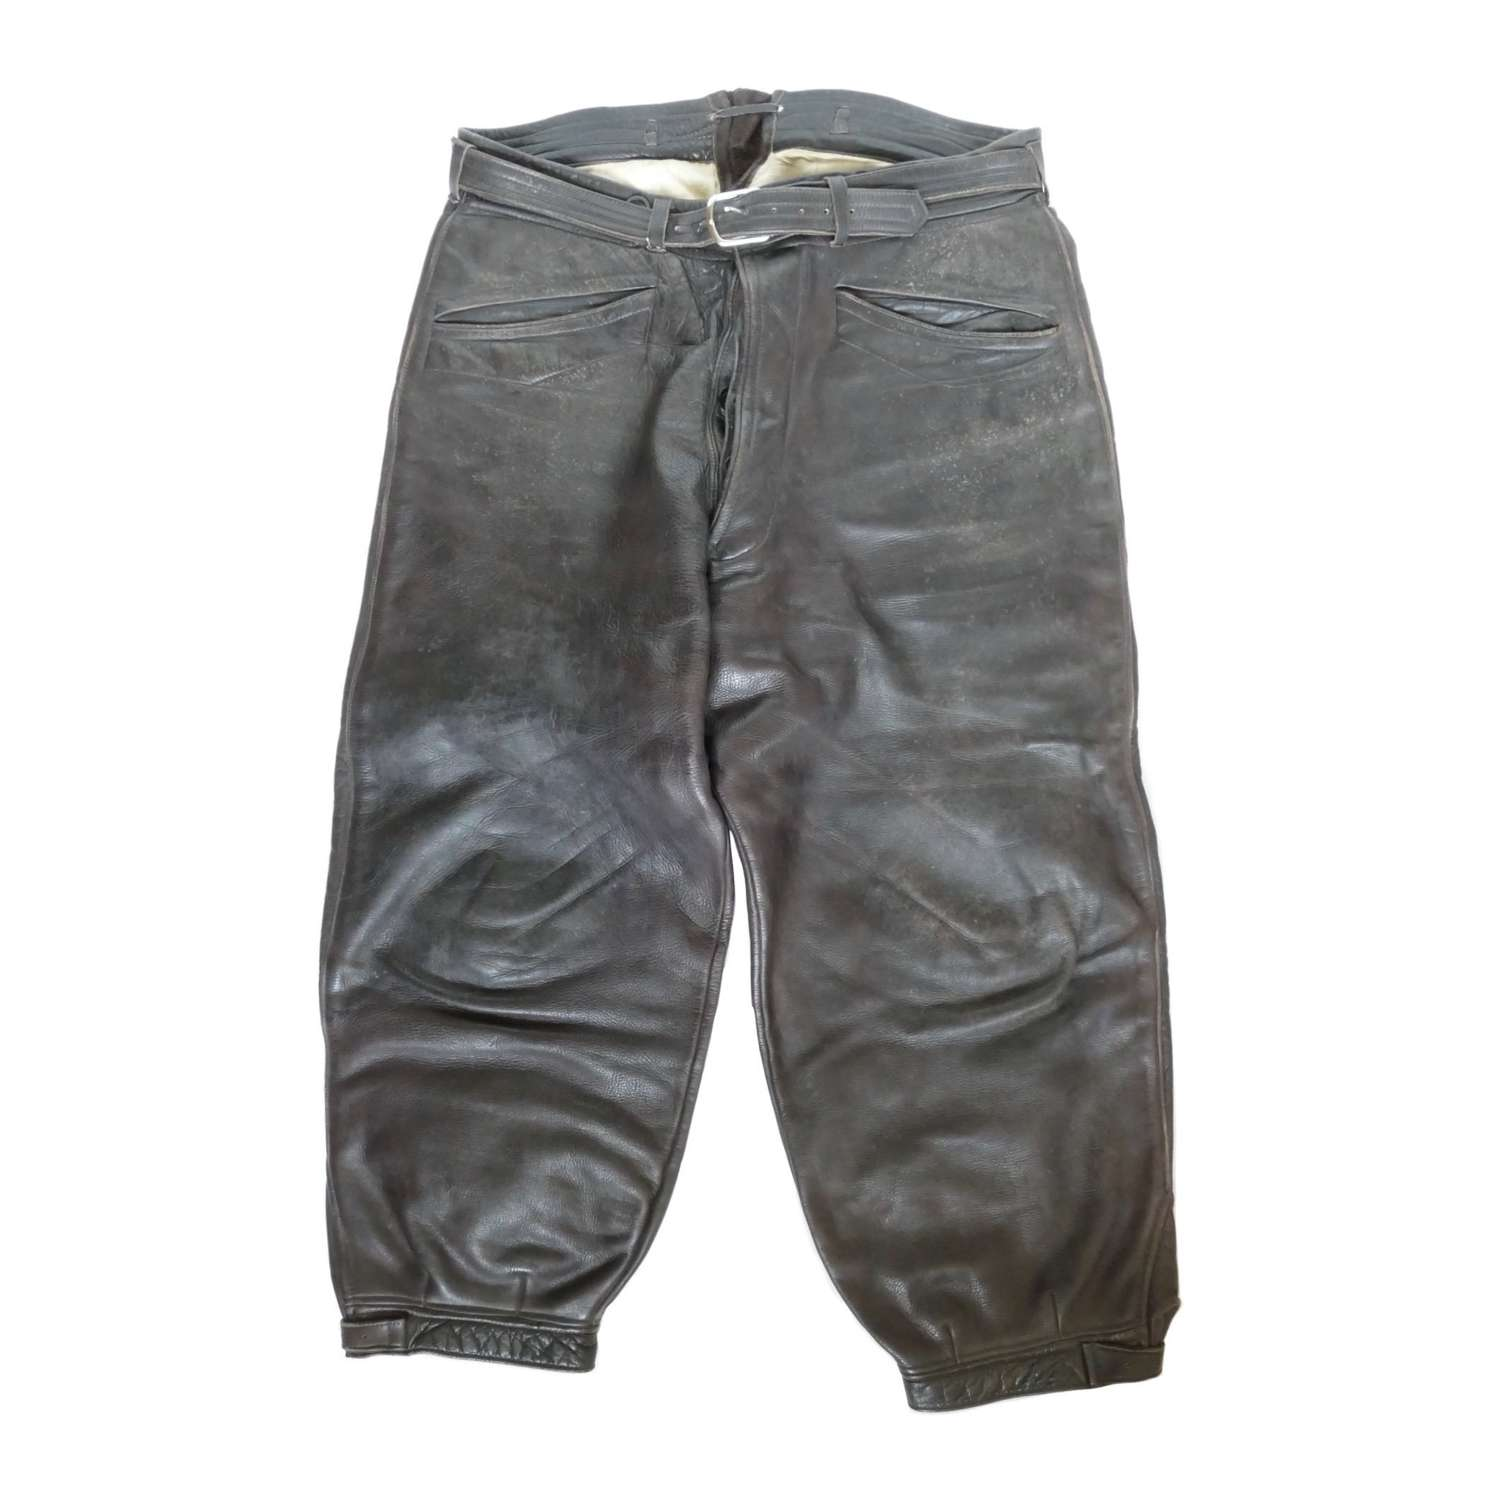 Luftwaffe 'used' flying trousers